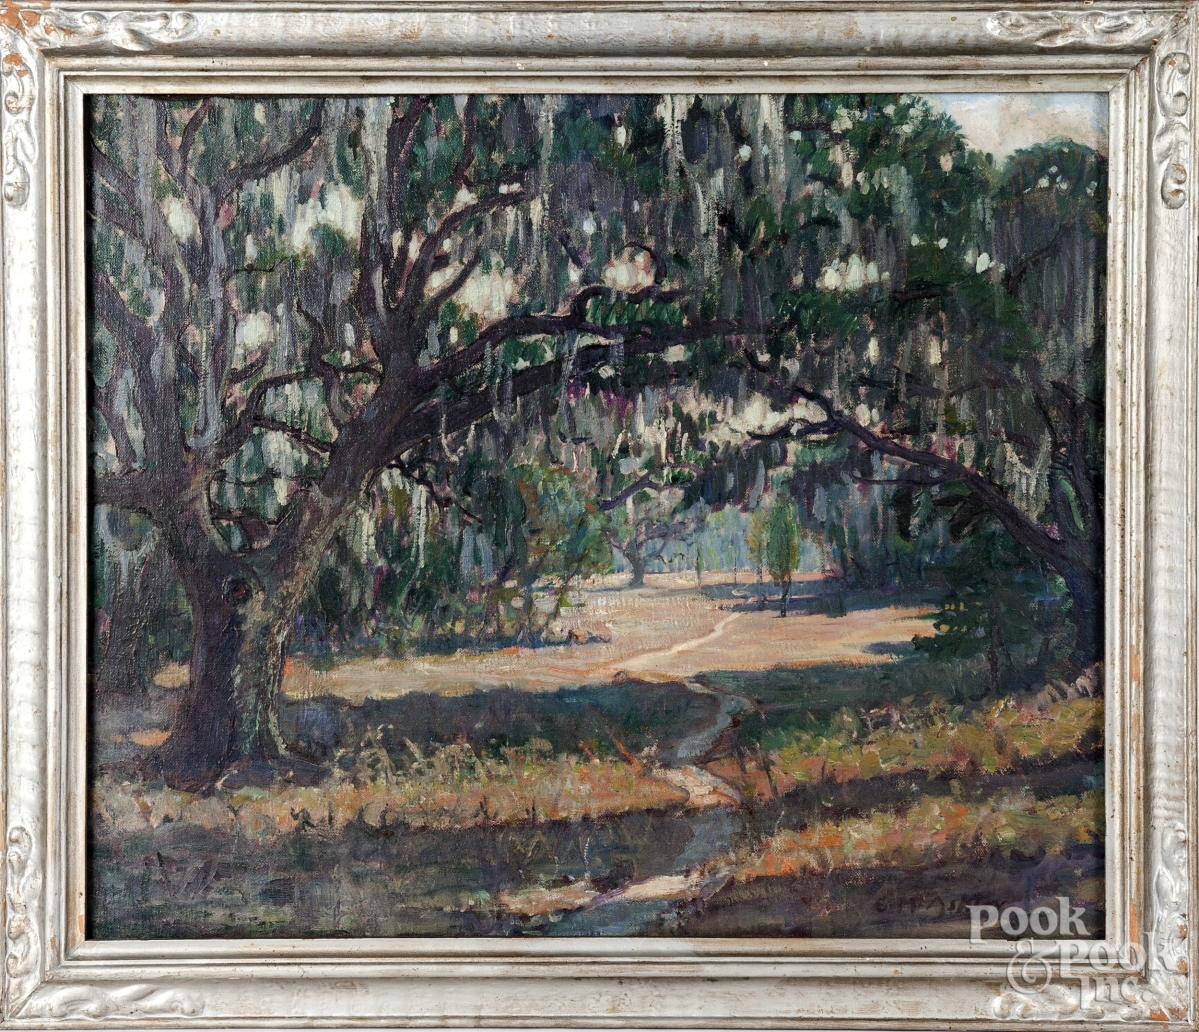 Clifford Warren Ashley (American, 1881–1947), oil on canvas of a Southern landscape with live oaks and Spanish moss, fetched $3,416.